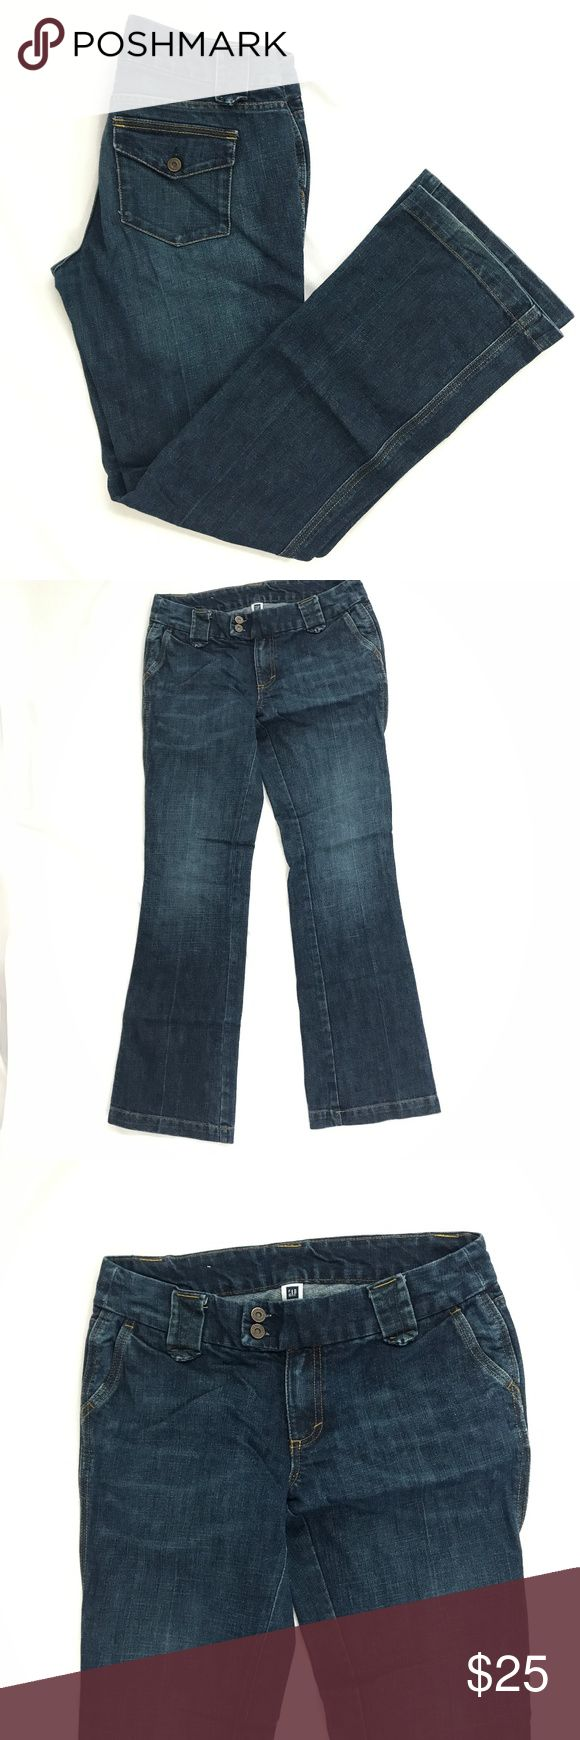 Gap Trouser Jeans Sandblasted Flare/Bootcut Gap Outlet Trouser Jeans Flare/Bootcut Leg with sandblasted wash Gently Used with slight wear/fading on bottom of leg openings near hemline. No Frays Size: 4    Measures:  Waist: 16 inches across laying flat    Rise: 8 inches   Inseam: 31 inches  Leg Opening: 18 inches around  85% Cotton, 15% Polyester GAP Jeans Flare & Wide Leg